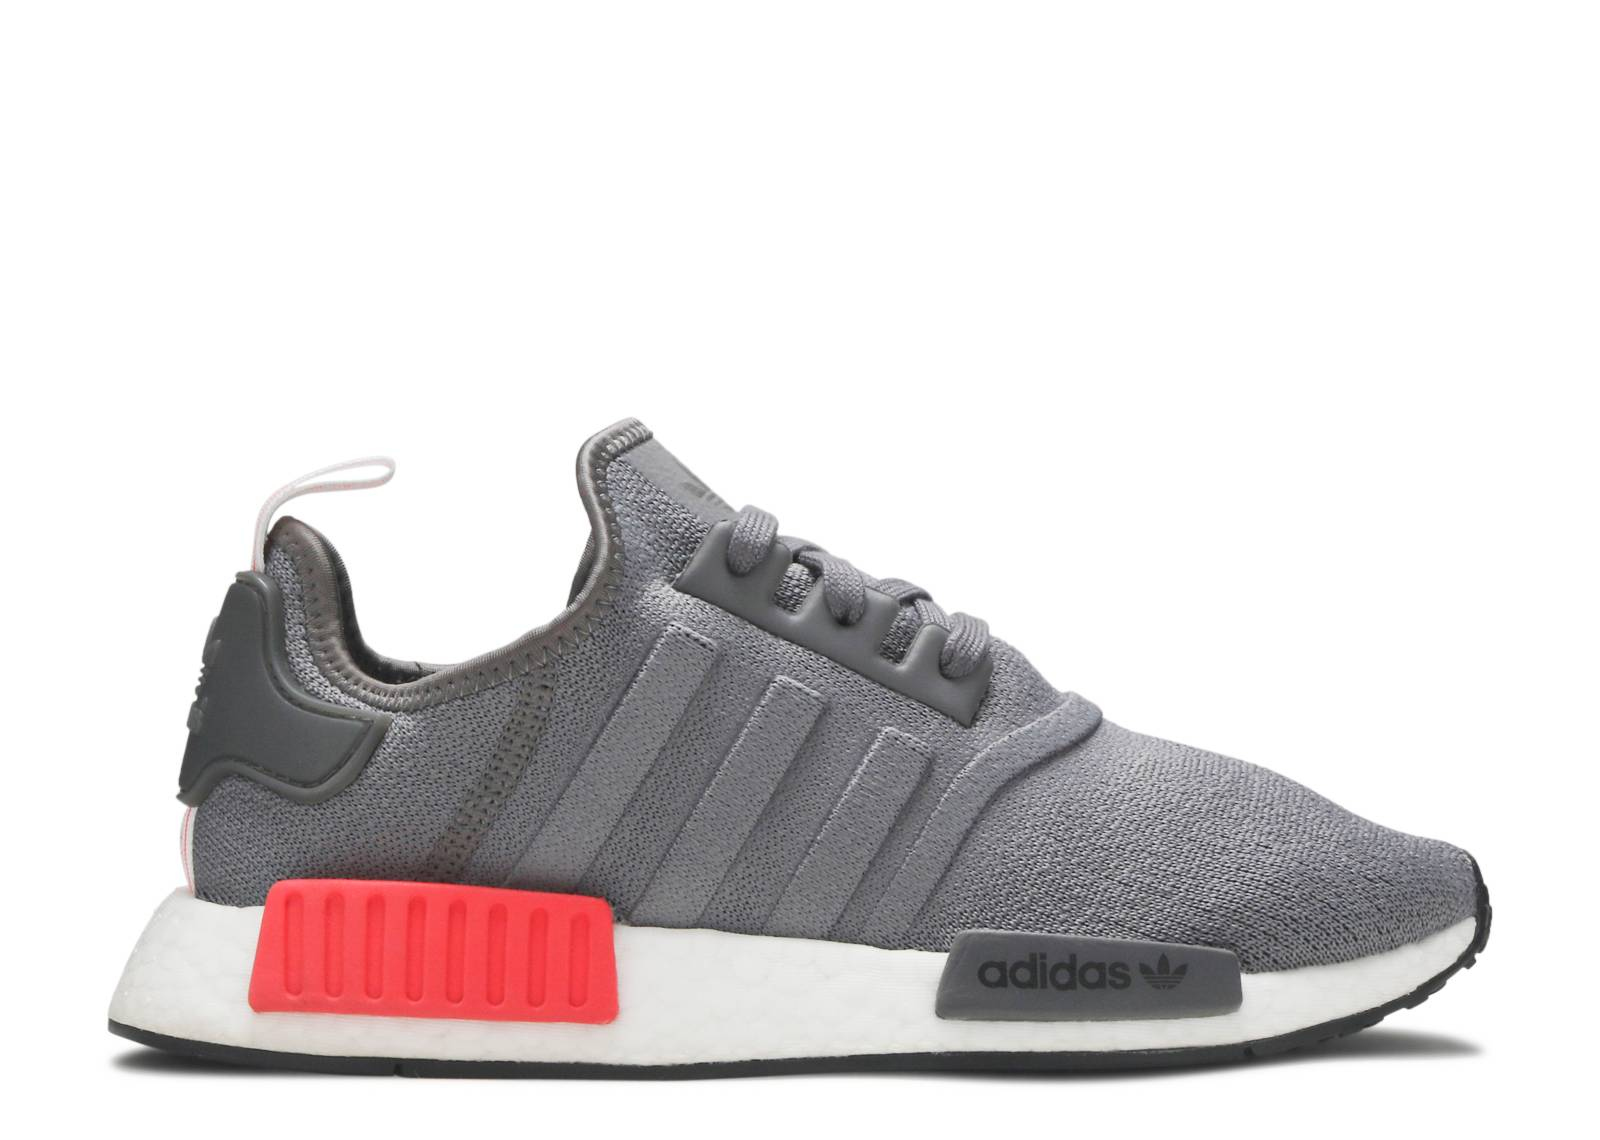 low priced d0969 f7701 Adidas NMD - adidas Originals Men's & Women's Shoes | Flight ...